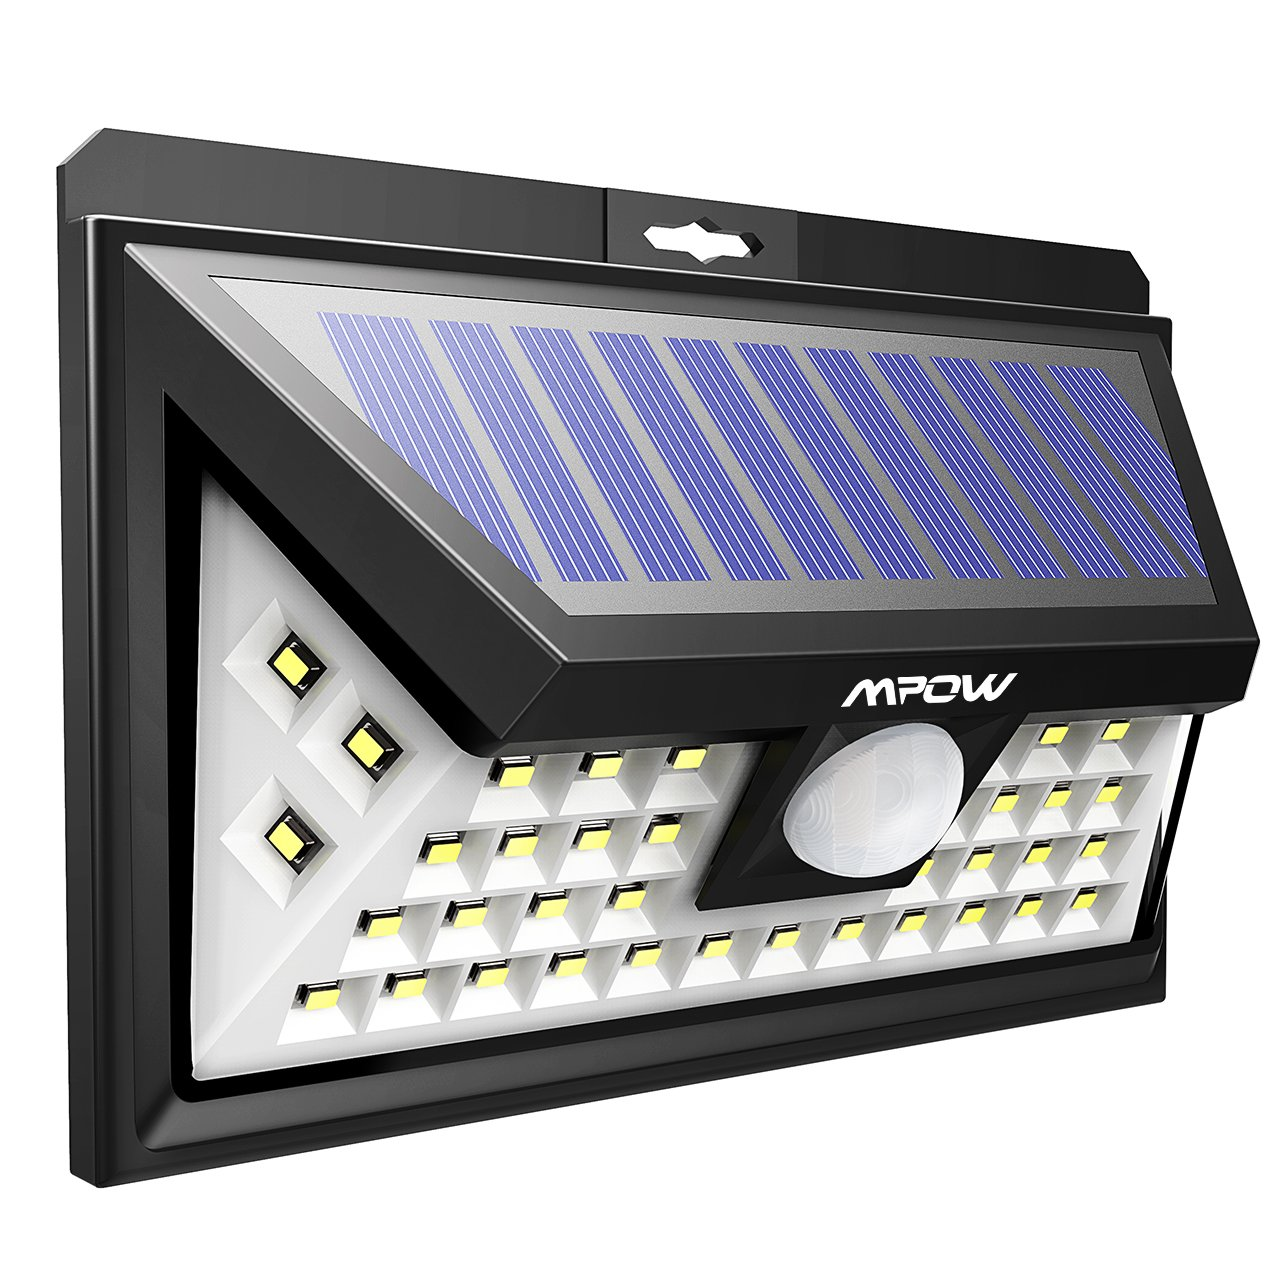 Amazon outdoor lighting mpow 40 led solar lights bright garden lights motion sensor 3 optional lighting modes mozeypictures Gallery